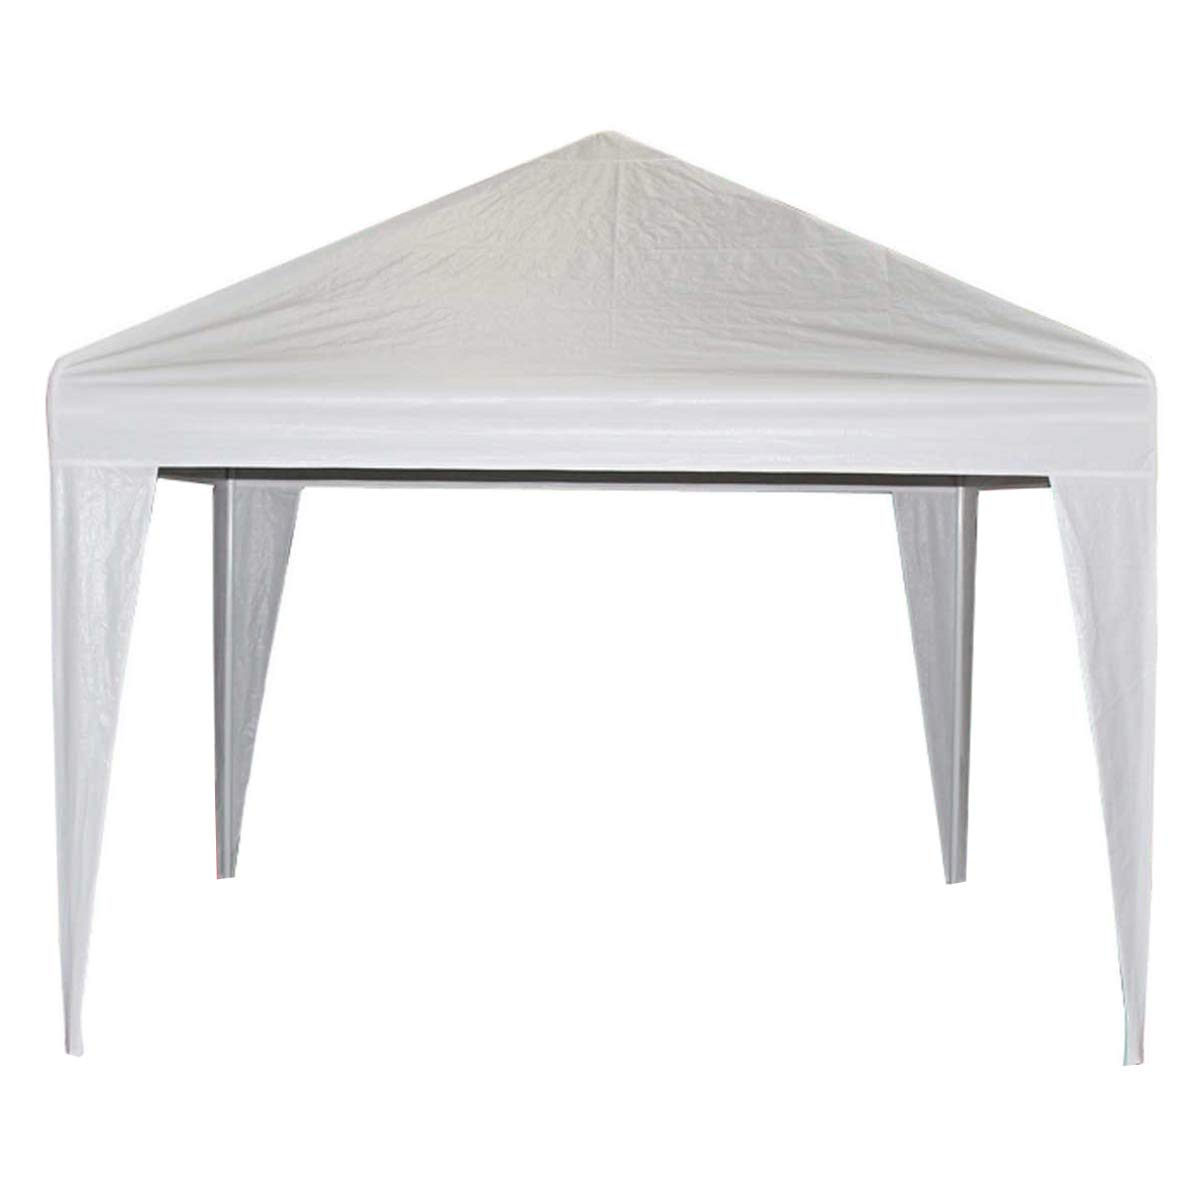 King Canopy Garden Party Rain Cover 10x10, White